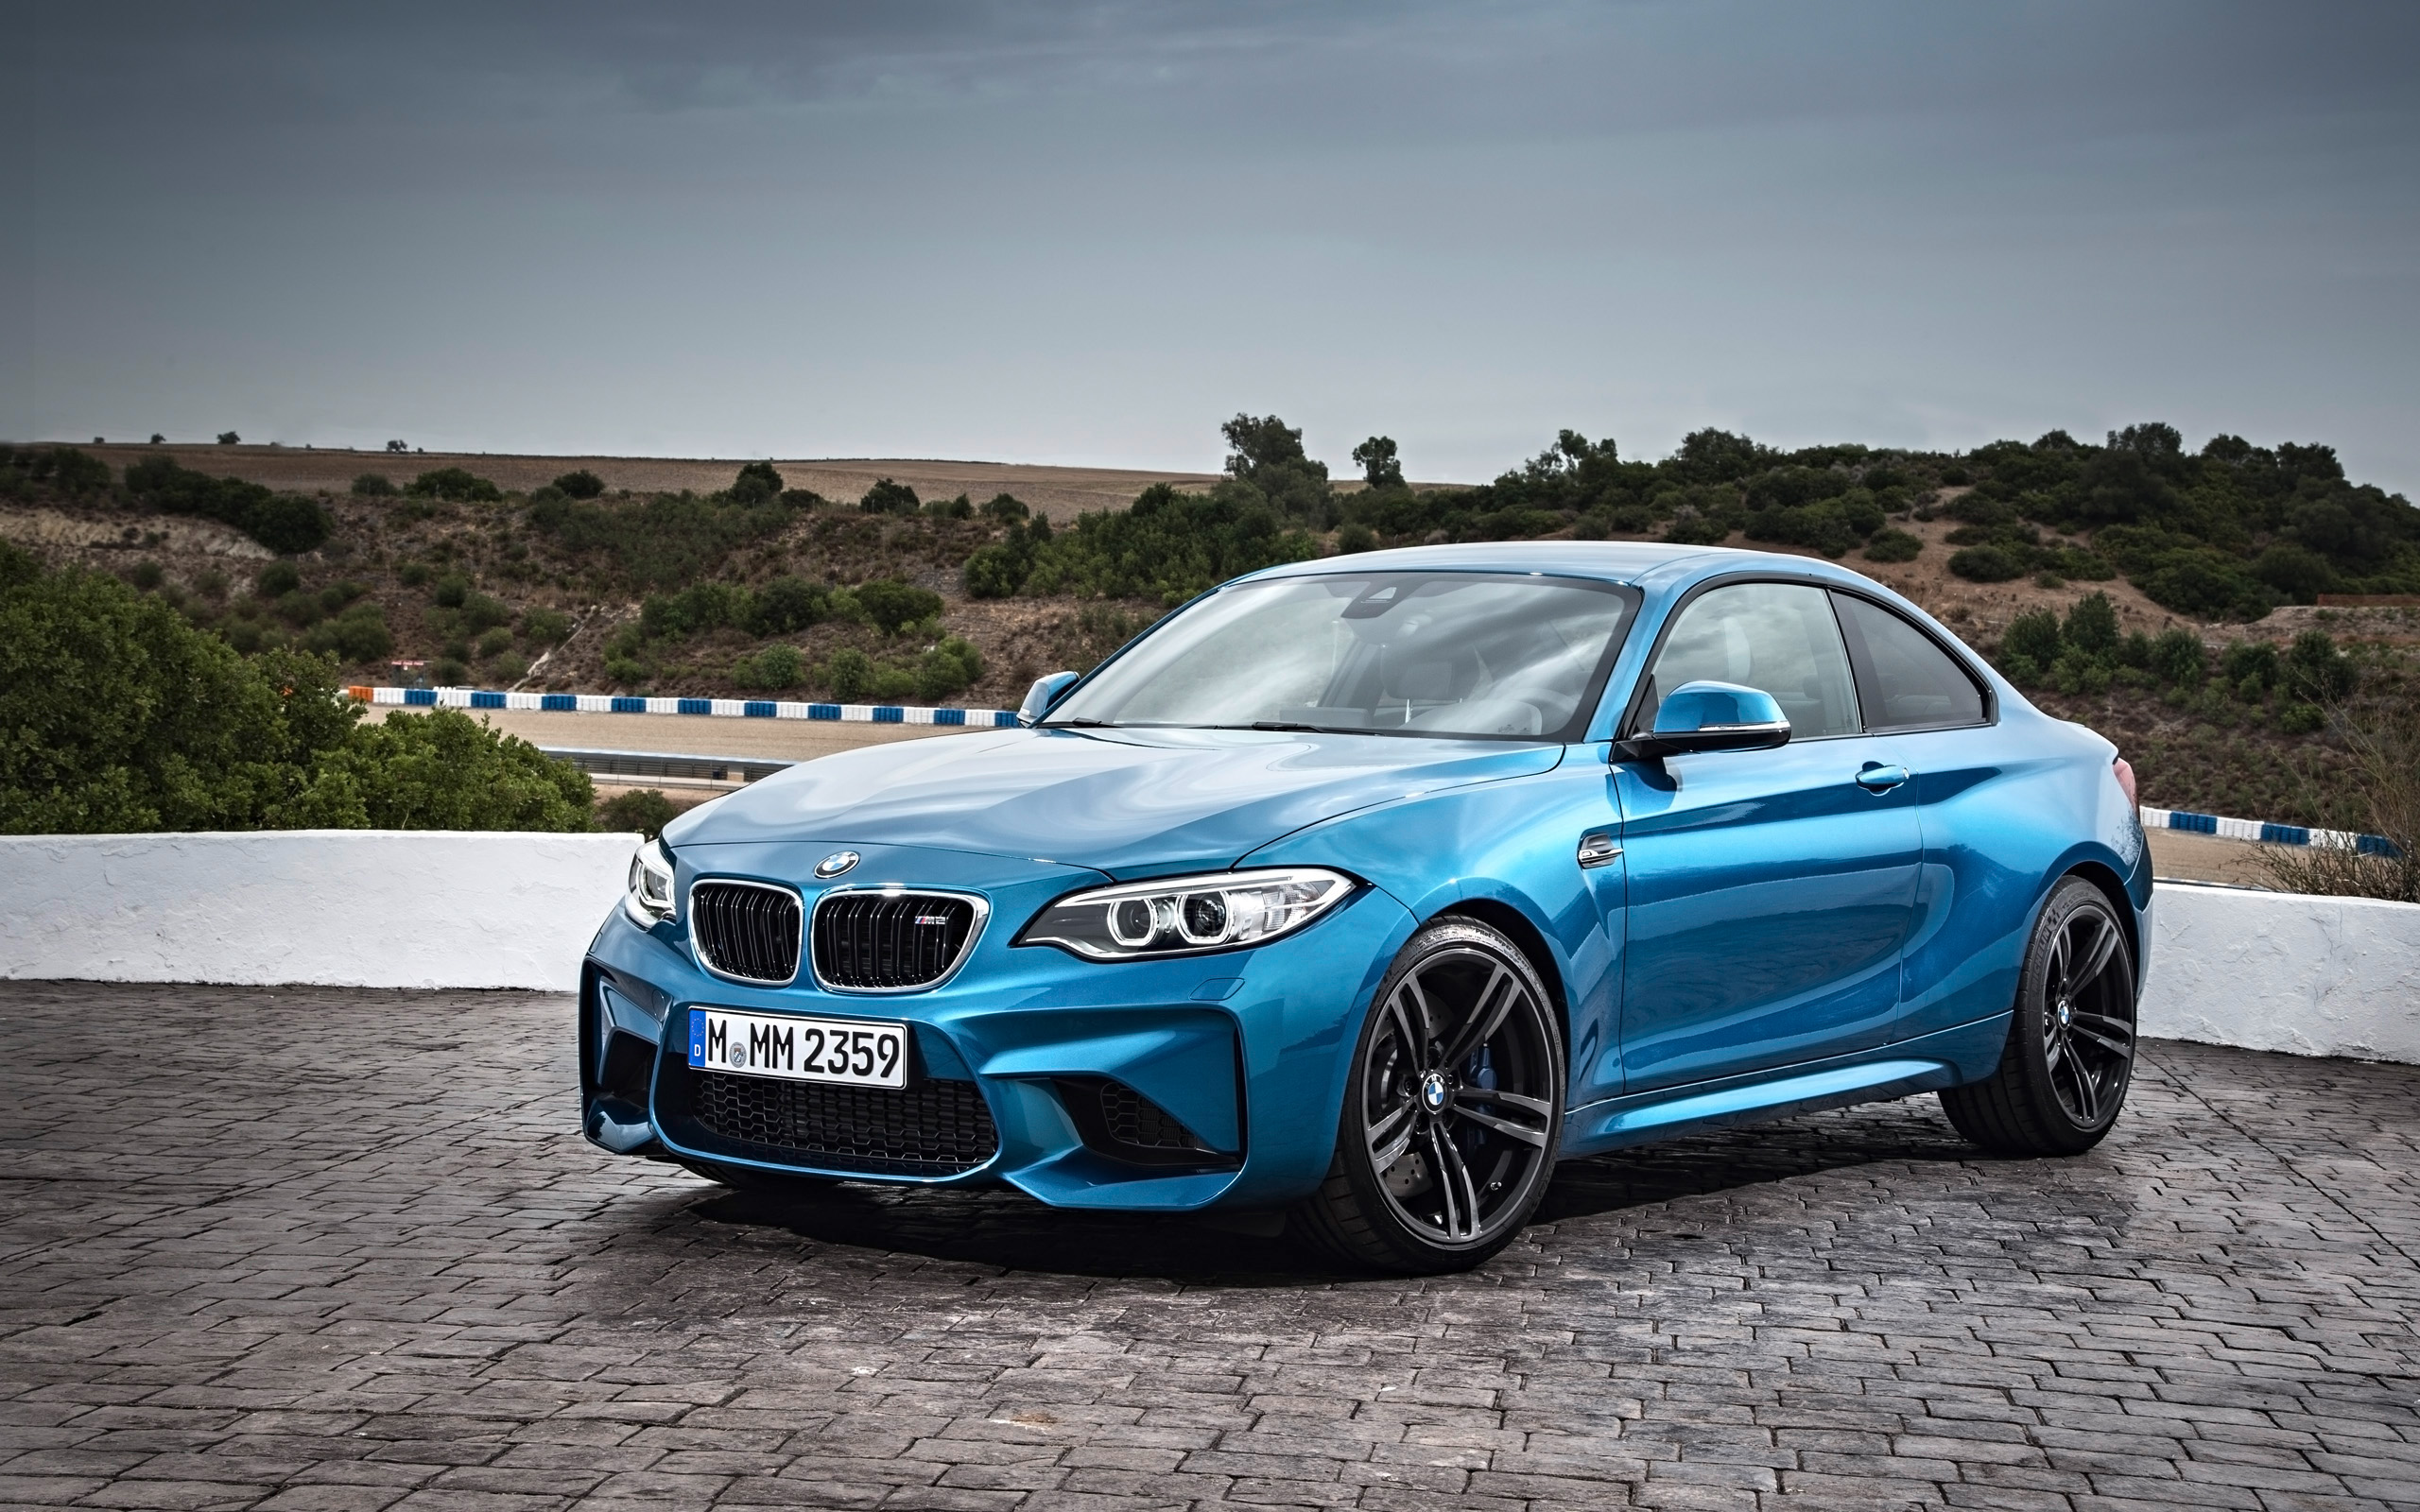 2016 BMW M2 Coupe Wallpaper HD Car Wallpapers 2560x1600